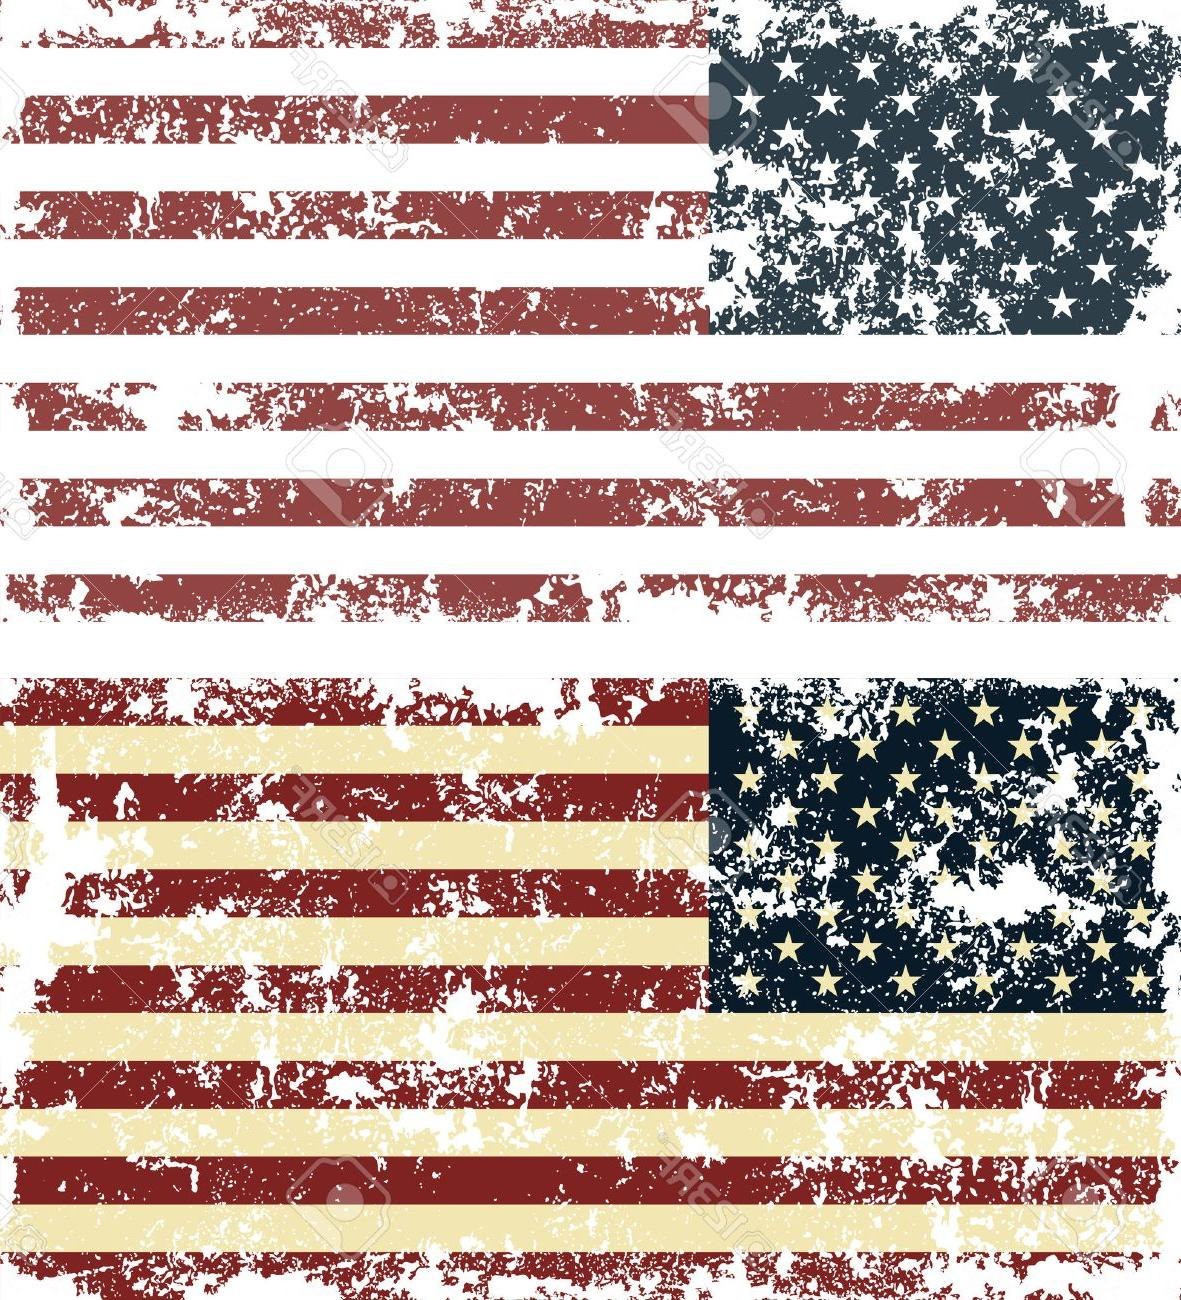 1181x1300 Hd Vintage American Flag Crochet Pattern Vector Images Free